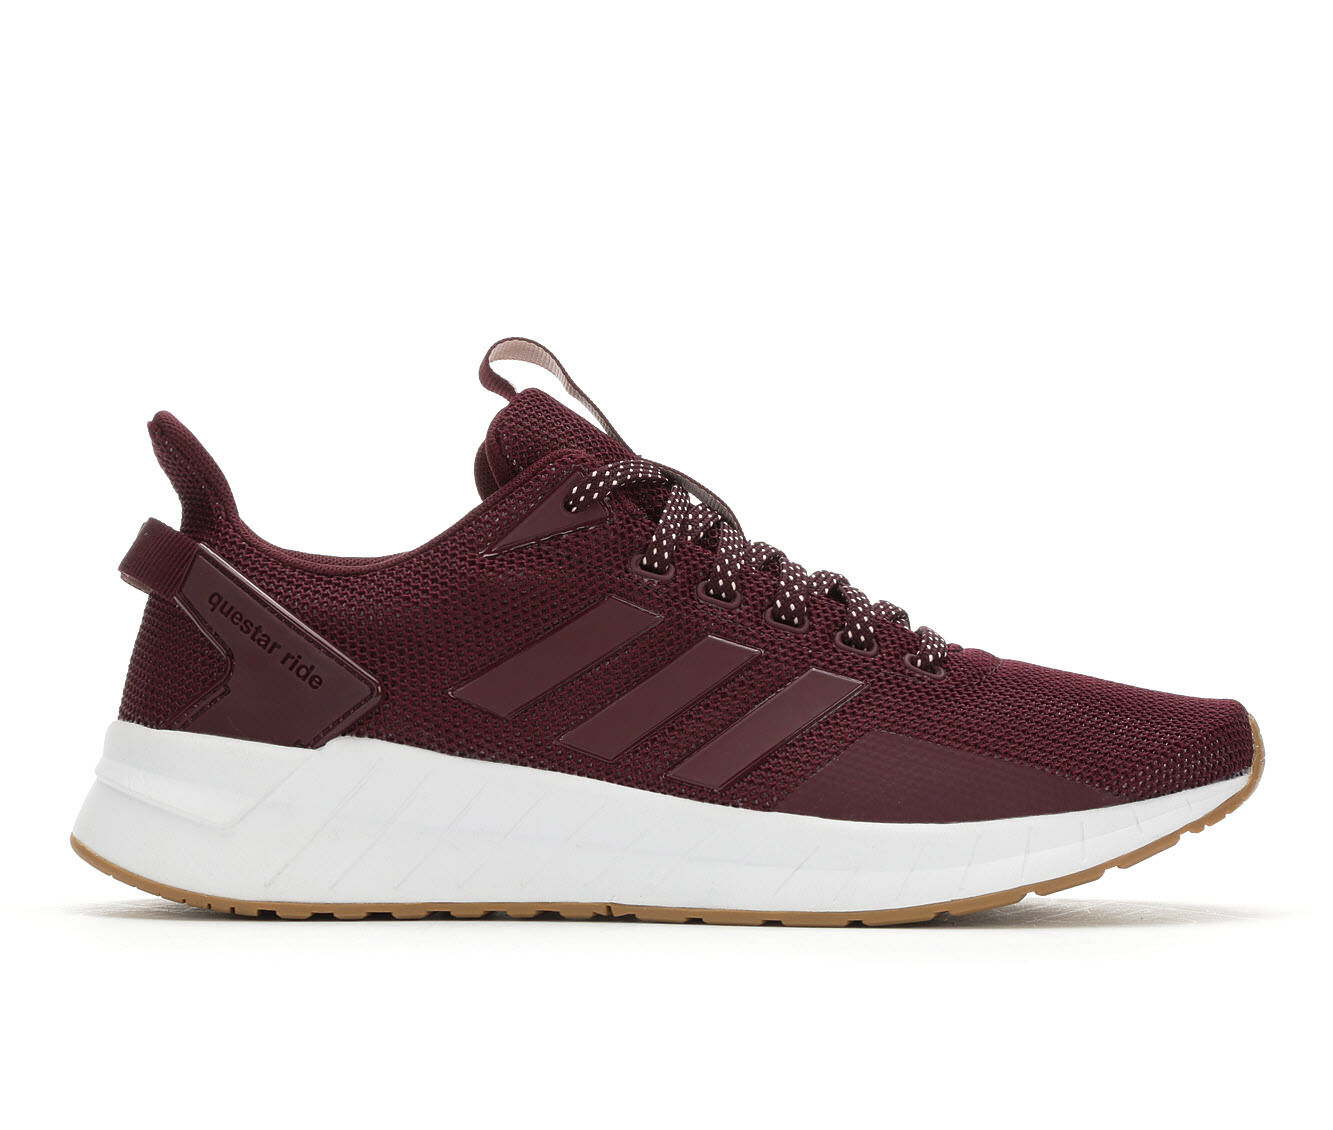 Purchase Price Women's Adidas Questar Ride Sneakers Maroon/White